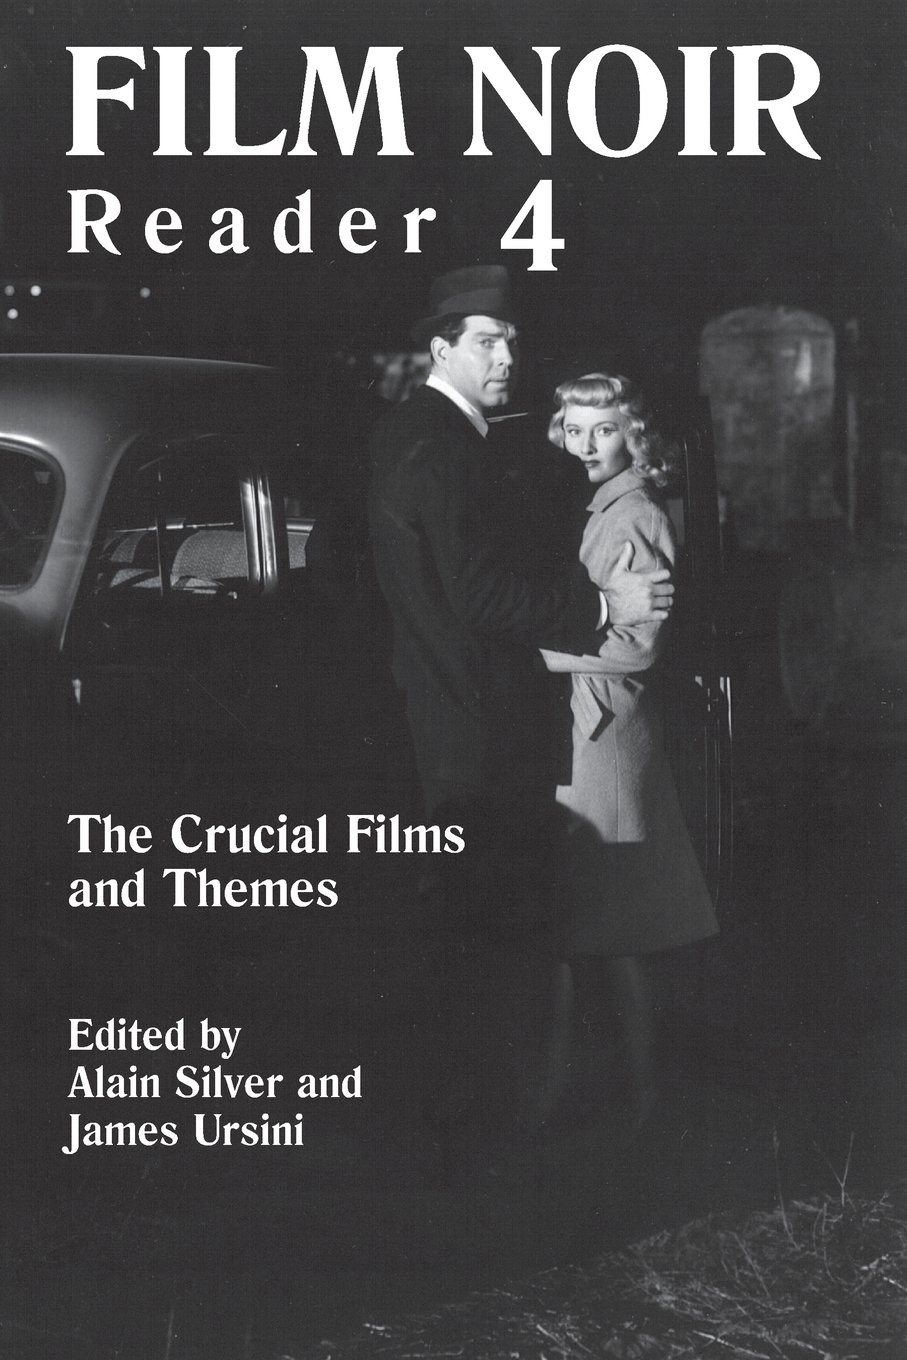 film noir essay film noir essay questions noir double indemnity  film noir reader the crucial films and themes bk alain film noir reader 4 the crucial film noir essay